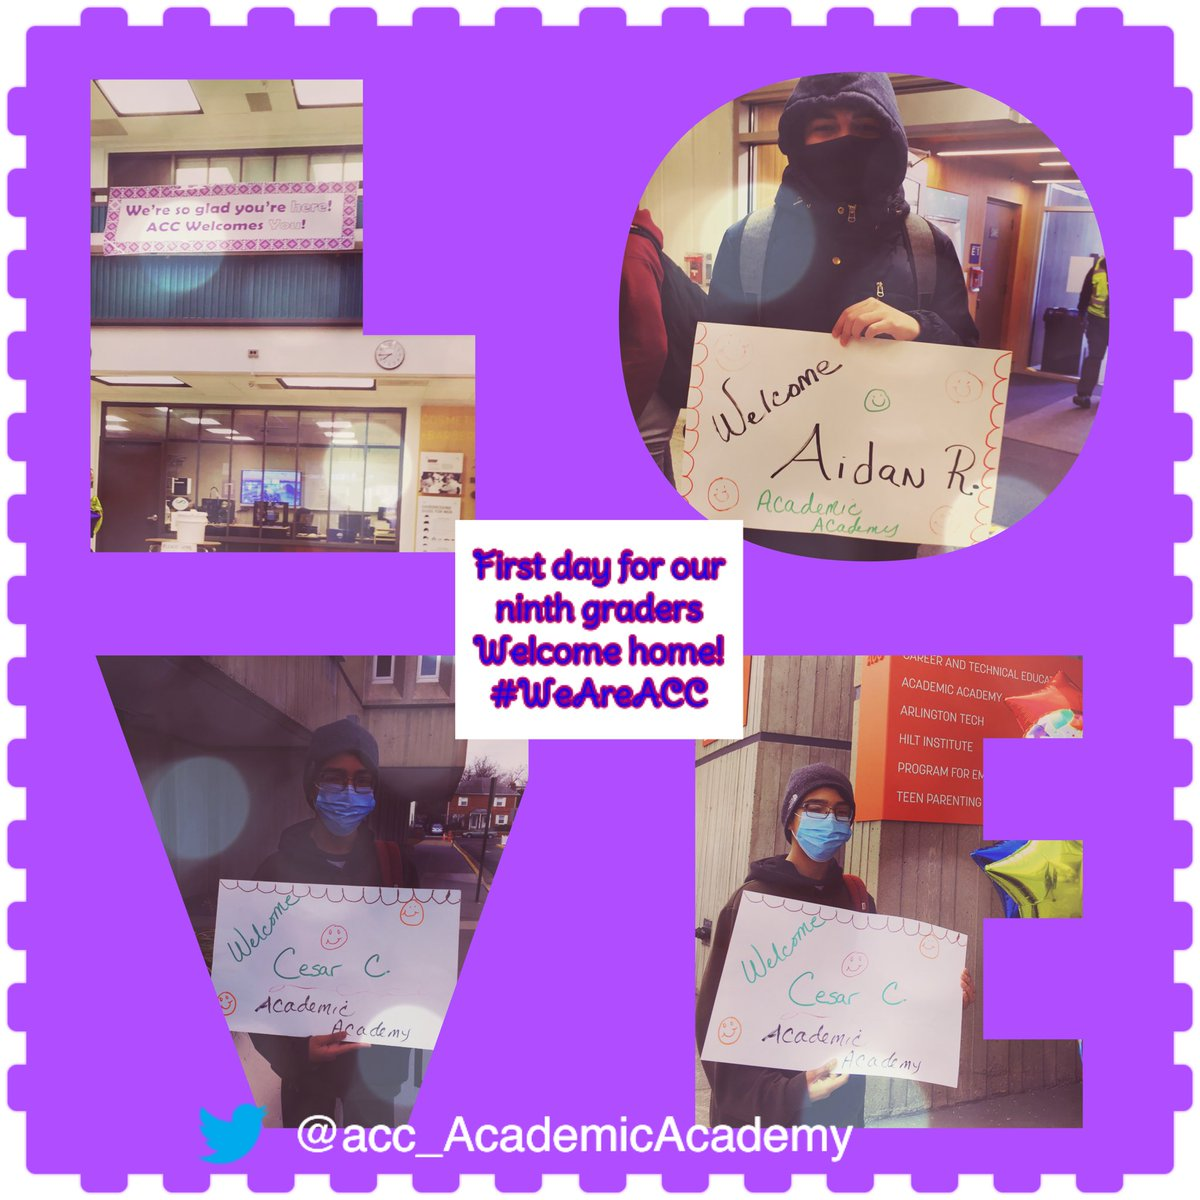 We had a loving & exciting welcome for our  <a target='_blank' href='http://twitter.com/AcadAcademy'>@AcadAcademy</a> ninth graders, who joined us today <a target='_blank' href='http://twitter.com/APSCareerCenter'>@APSCareerCenter</a> for the first time this school year! So good to have them home! Welcome! <a target='_blank' href='http://twitter.com/LisaStylesACC1'>@LisaStylesACC1</a> <a target='_blank' href='http://twitter.com/AccCounseling'>@AccCounseling</a> <a target='_blank' href='http://twitter.com/Margaretchungcc'>@Margaretchungcc</a> <a target='_blank' href='http://twitter.com/MsBakerACC'>@MsBakerACC</a> <a target='_blank' href='http://search.twitter.com/search?q=WeAreAcc'><a target='_blank' href='https://twitter.com/hashtag/WeAreAcc?src=hash'>#WeAreAcc</a></a> <a target='_blank' href='http://twitter.com/APSVaSchoolBd'>@APSVaSchoolBd</a> <a target='_blank' href='http://twitter.com/APSVirginia'>@APSVirginia</a> <a target='_blank' href='https://t.co/VU0iMEd23t'>https://t.co/VU0iMEd23t</a>